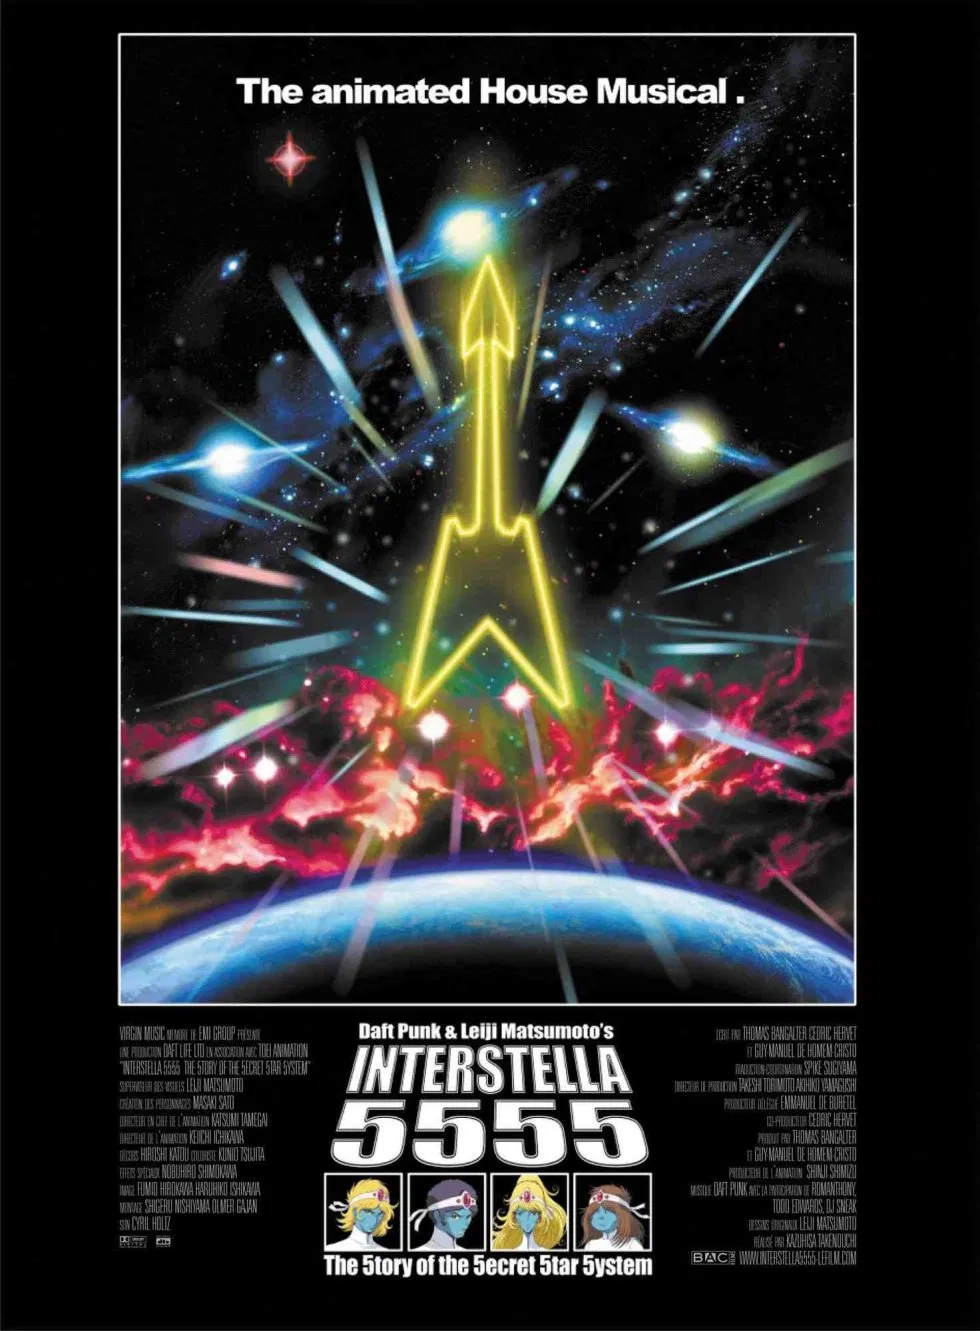 Interstella 5555 La Película De Daft Punk En Streaming En 2020 Interstella 5555 Daft Punk Peliculas